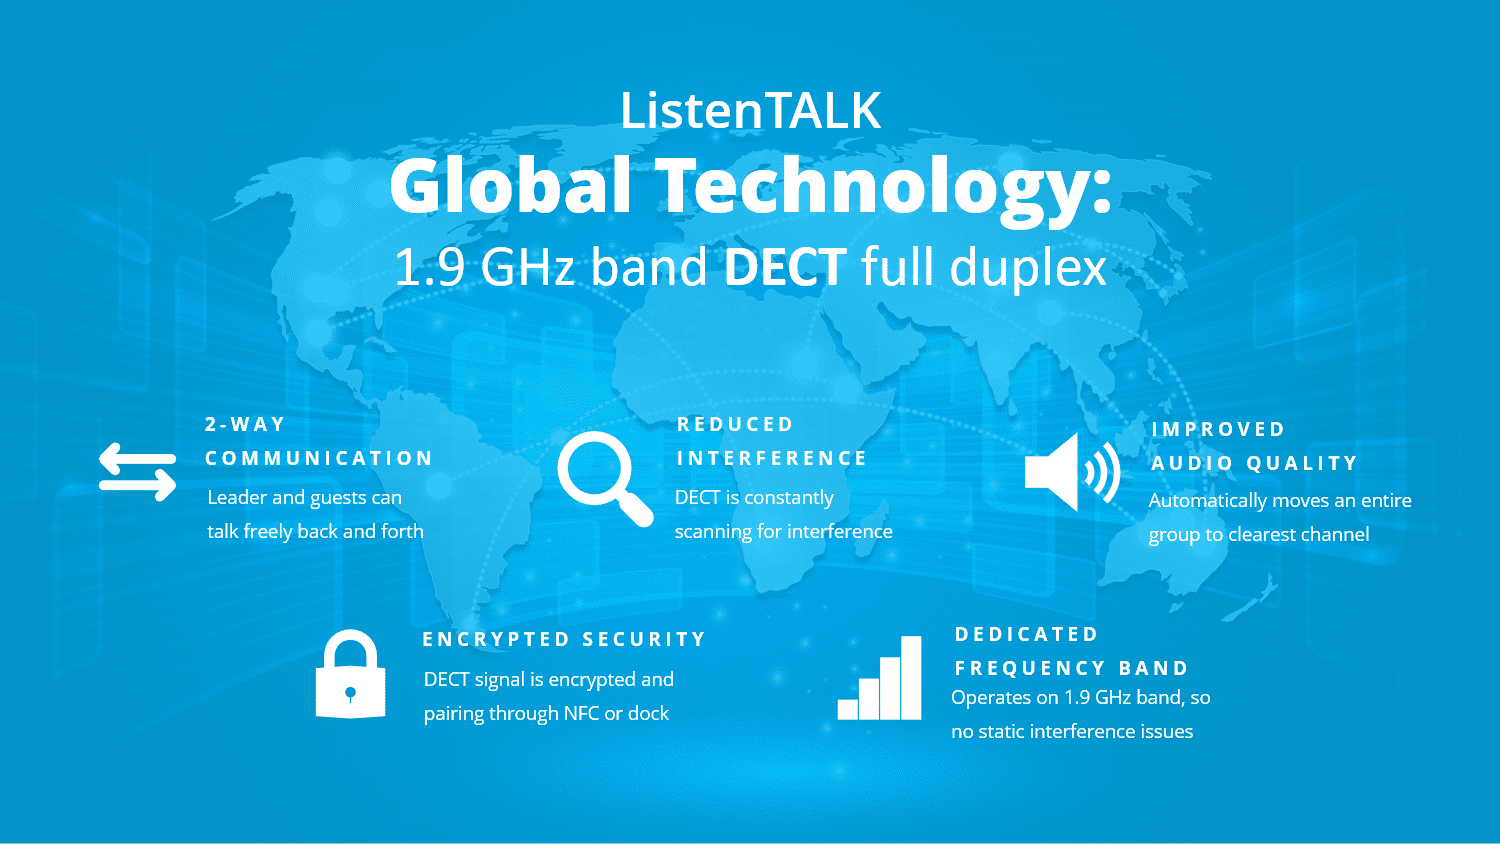 Infographic about Global Technology: 1.9 GHZ band DECT full duplex. Two way communication: leader and guests can talk freely back and forth. Encrypted security: DECT signal is encrypted and pairing through NFC or dock. Reduced Interference: DECT is constantly scanning for interference. Dedicated frequency band: operates on 1.0 GHz band, so no static interference issues. Improved audio quality: Automatically moves an entire group to clearest channel.